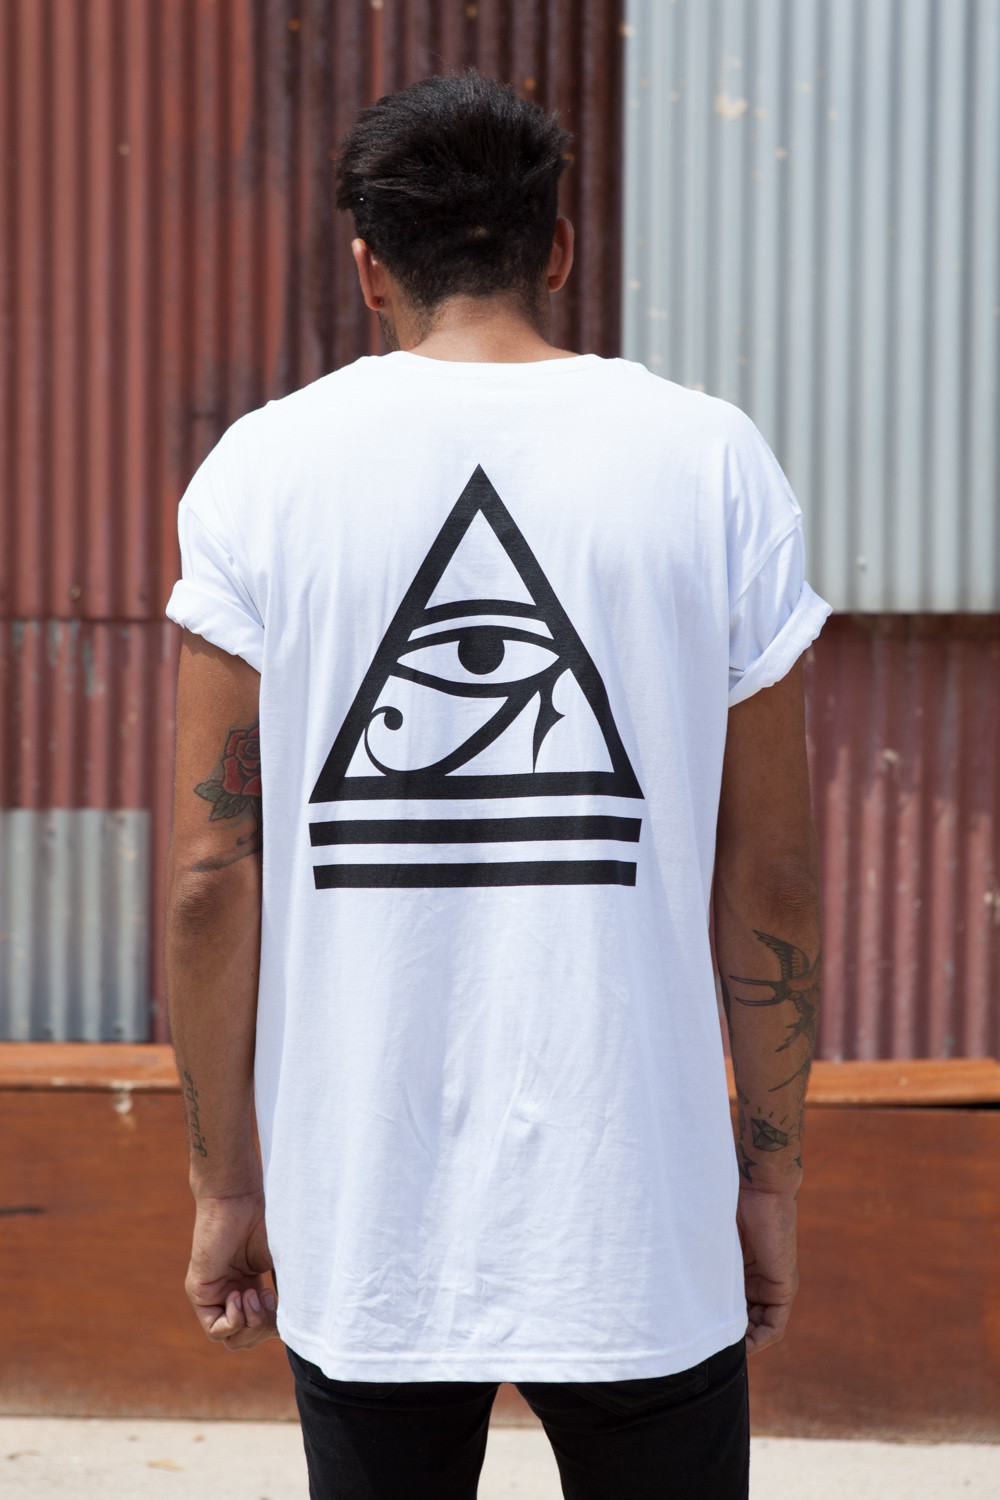 All Seeing Eye-Urban Wear Streetwear Urban Clothing 6949d8e8a854